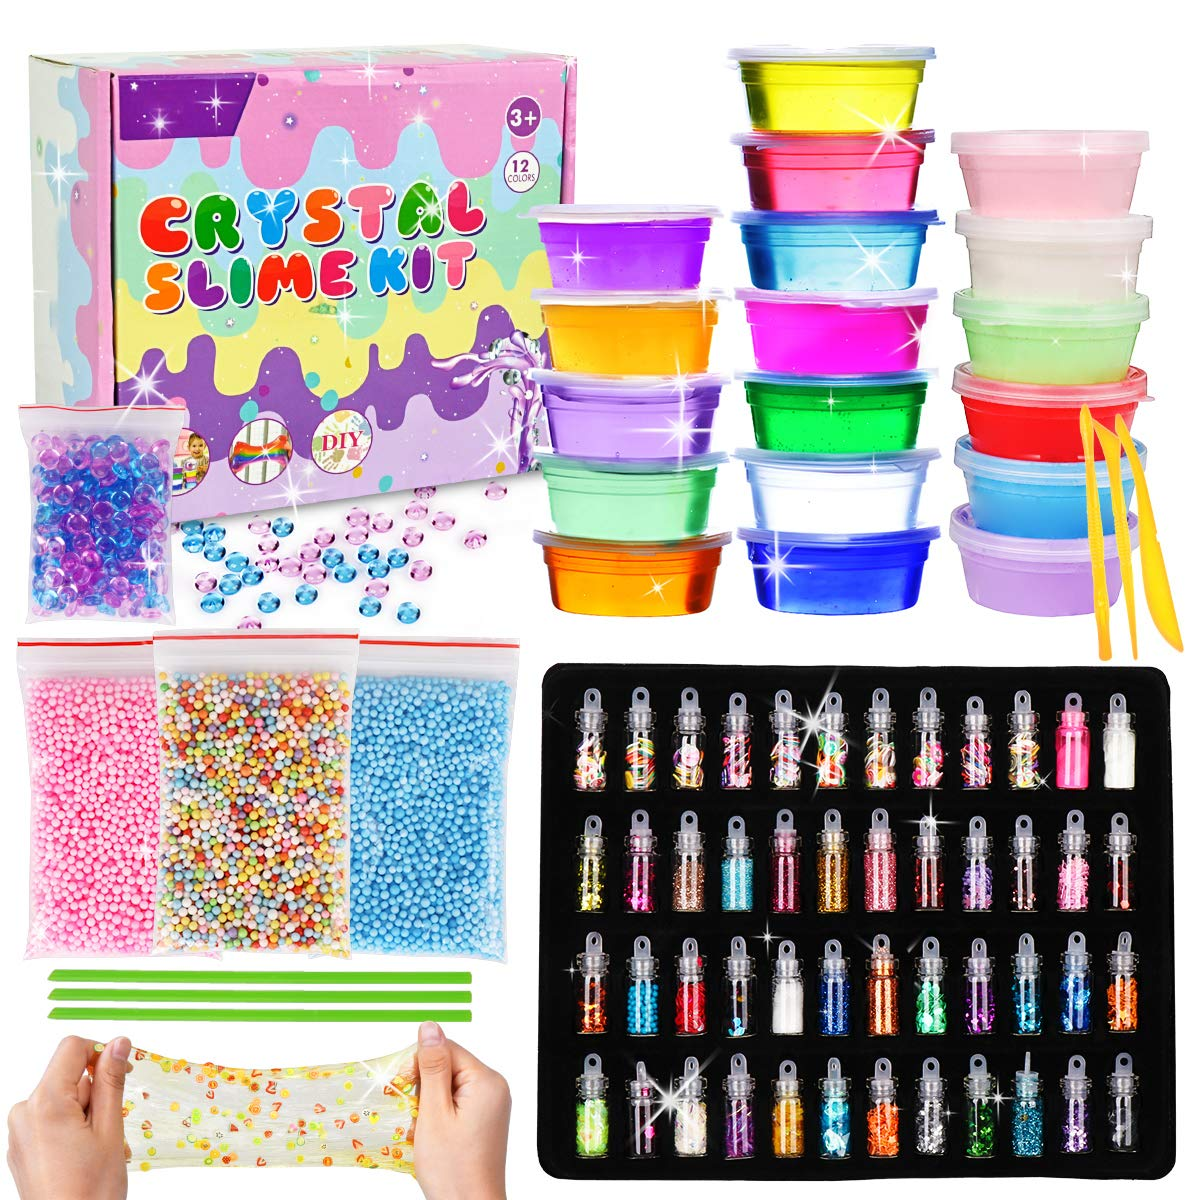 LOYO Slime Kit for Girls Boys - 76 pcs DIY Slime Making Kit Supplies with Kids Clear Crystal Slime and Fluffy Slime Includes Big Foam Beads to Make Your Own Glitter and Glow in The Dark SlimeSlime by LOYO